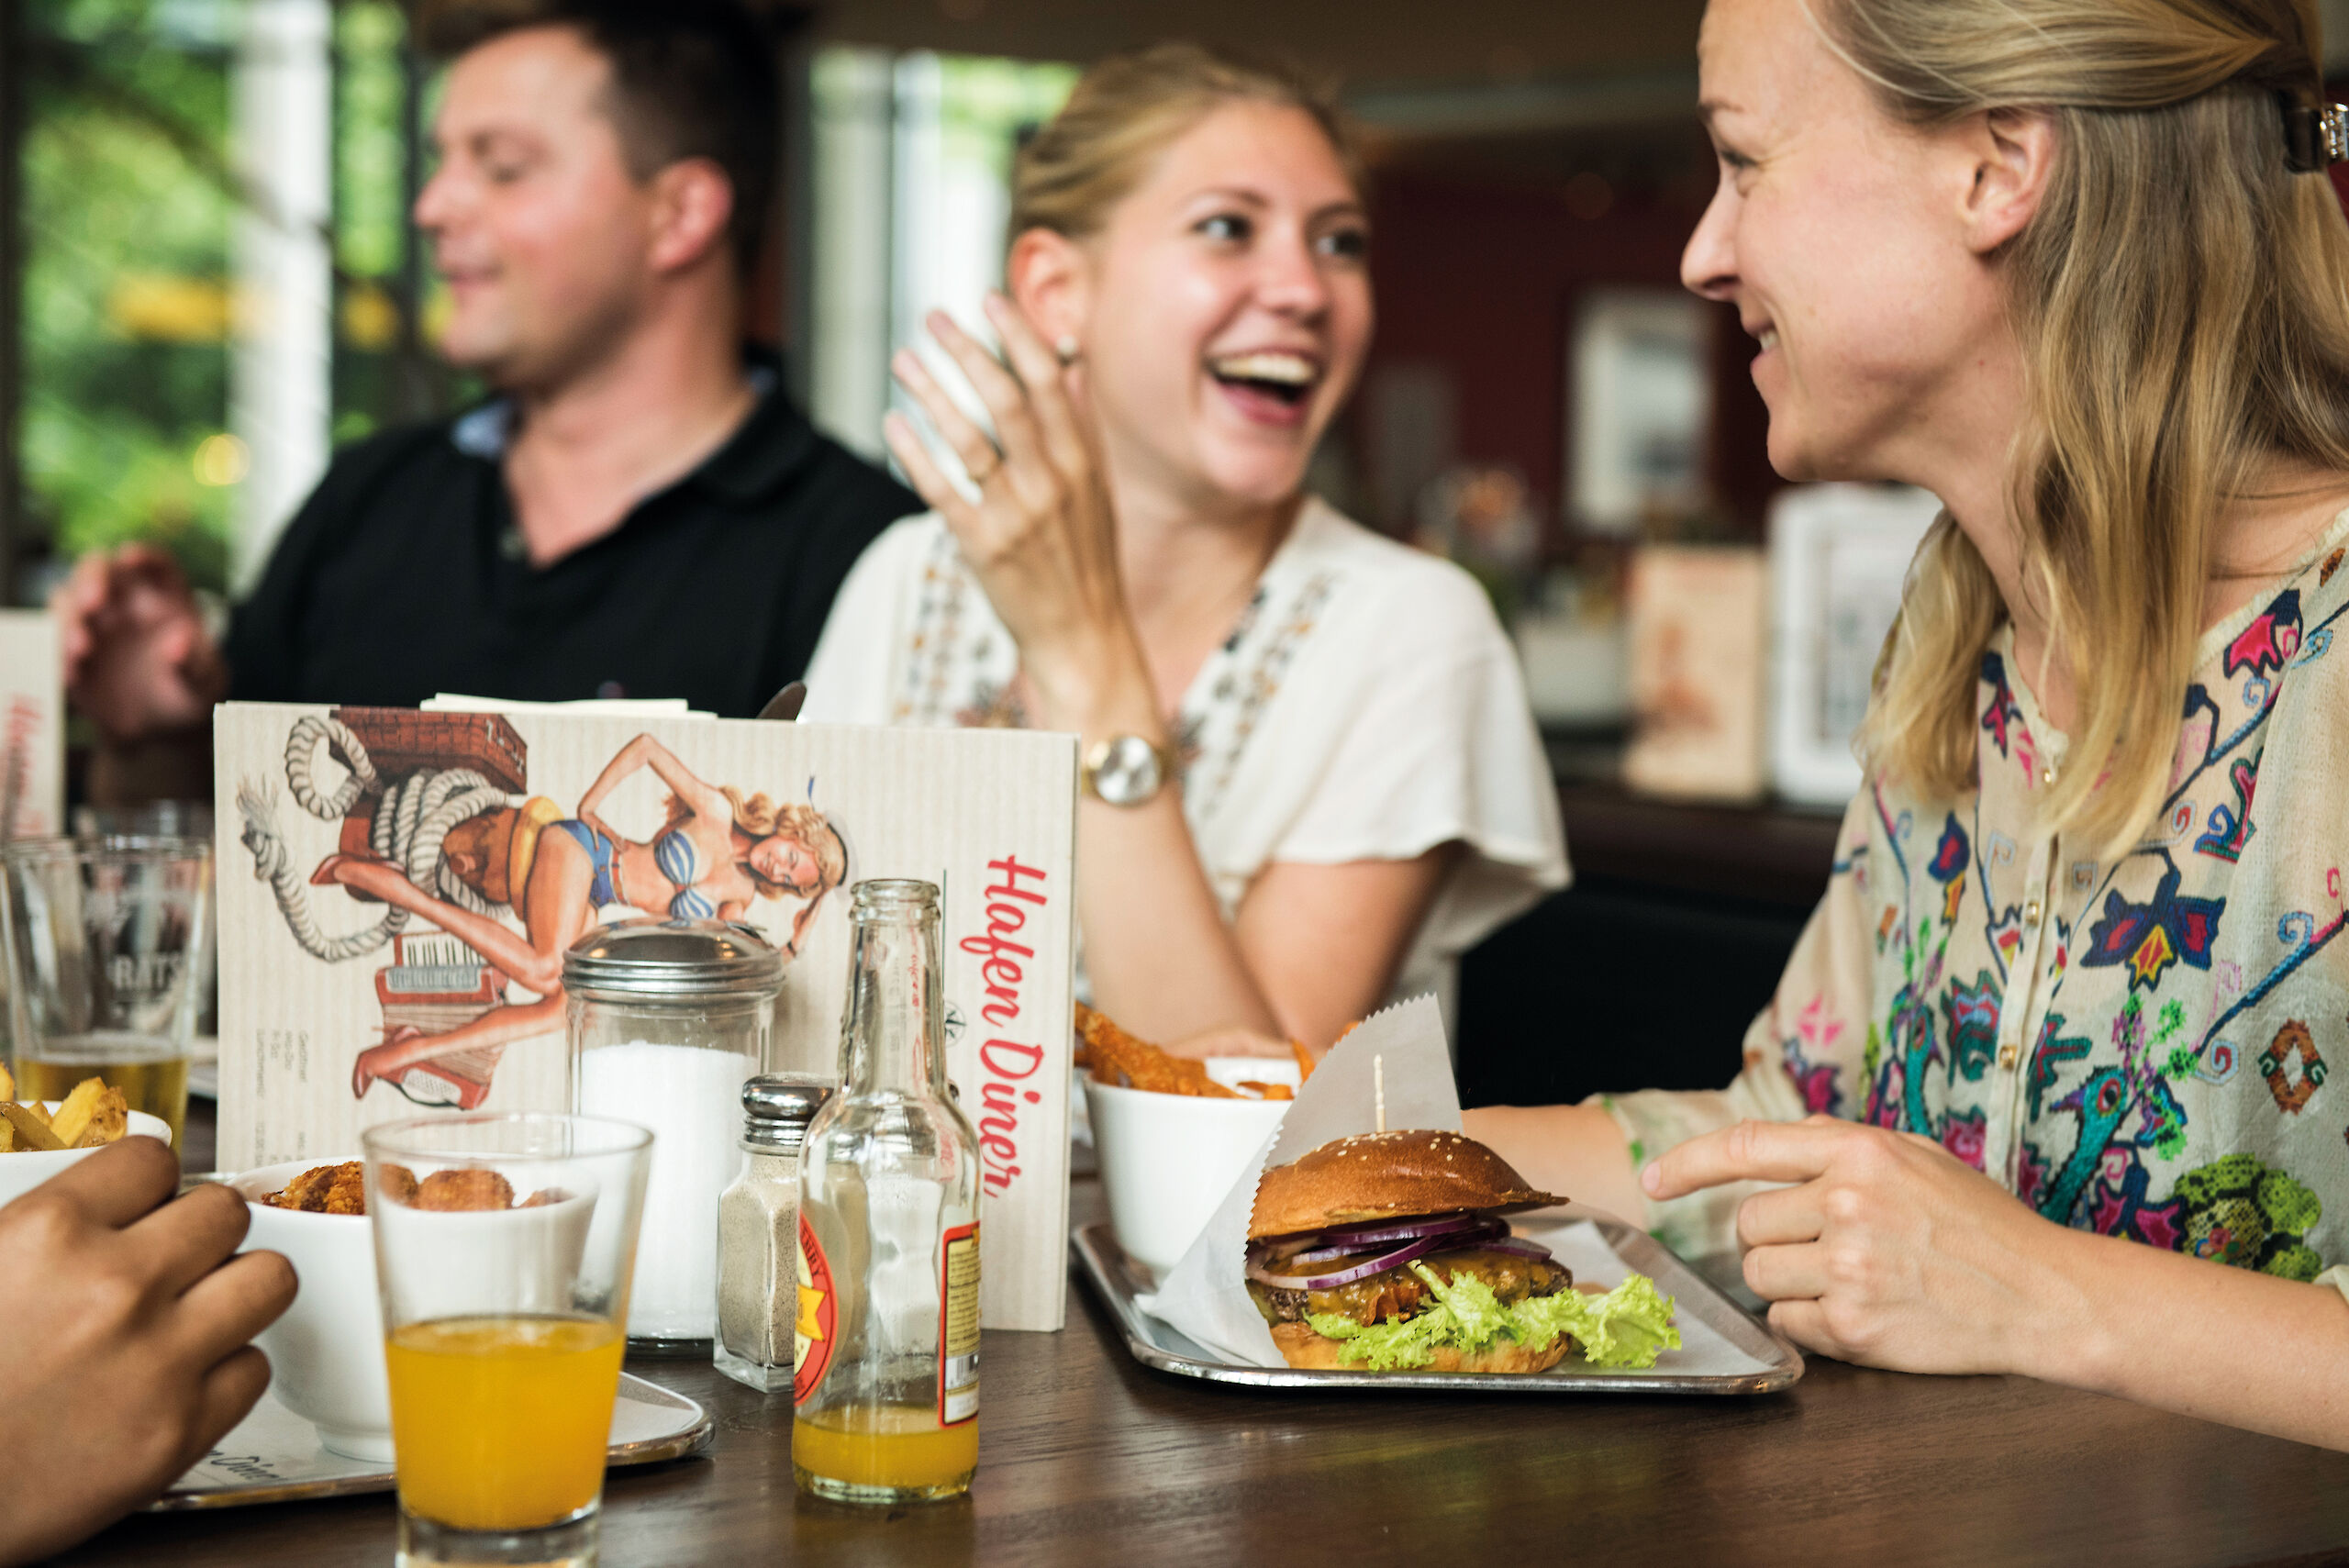 Guests enjoying their day with a juicy burger at the Hafen Diner